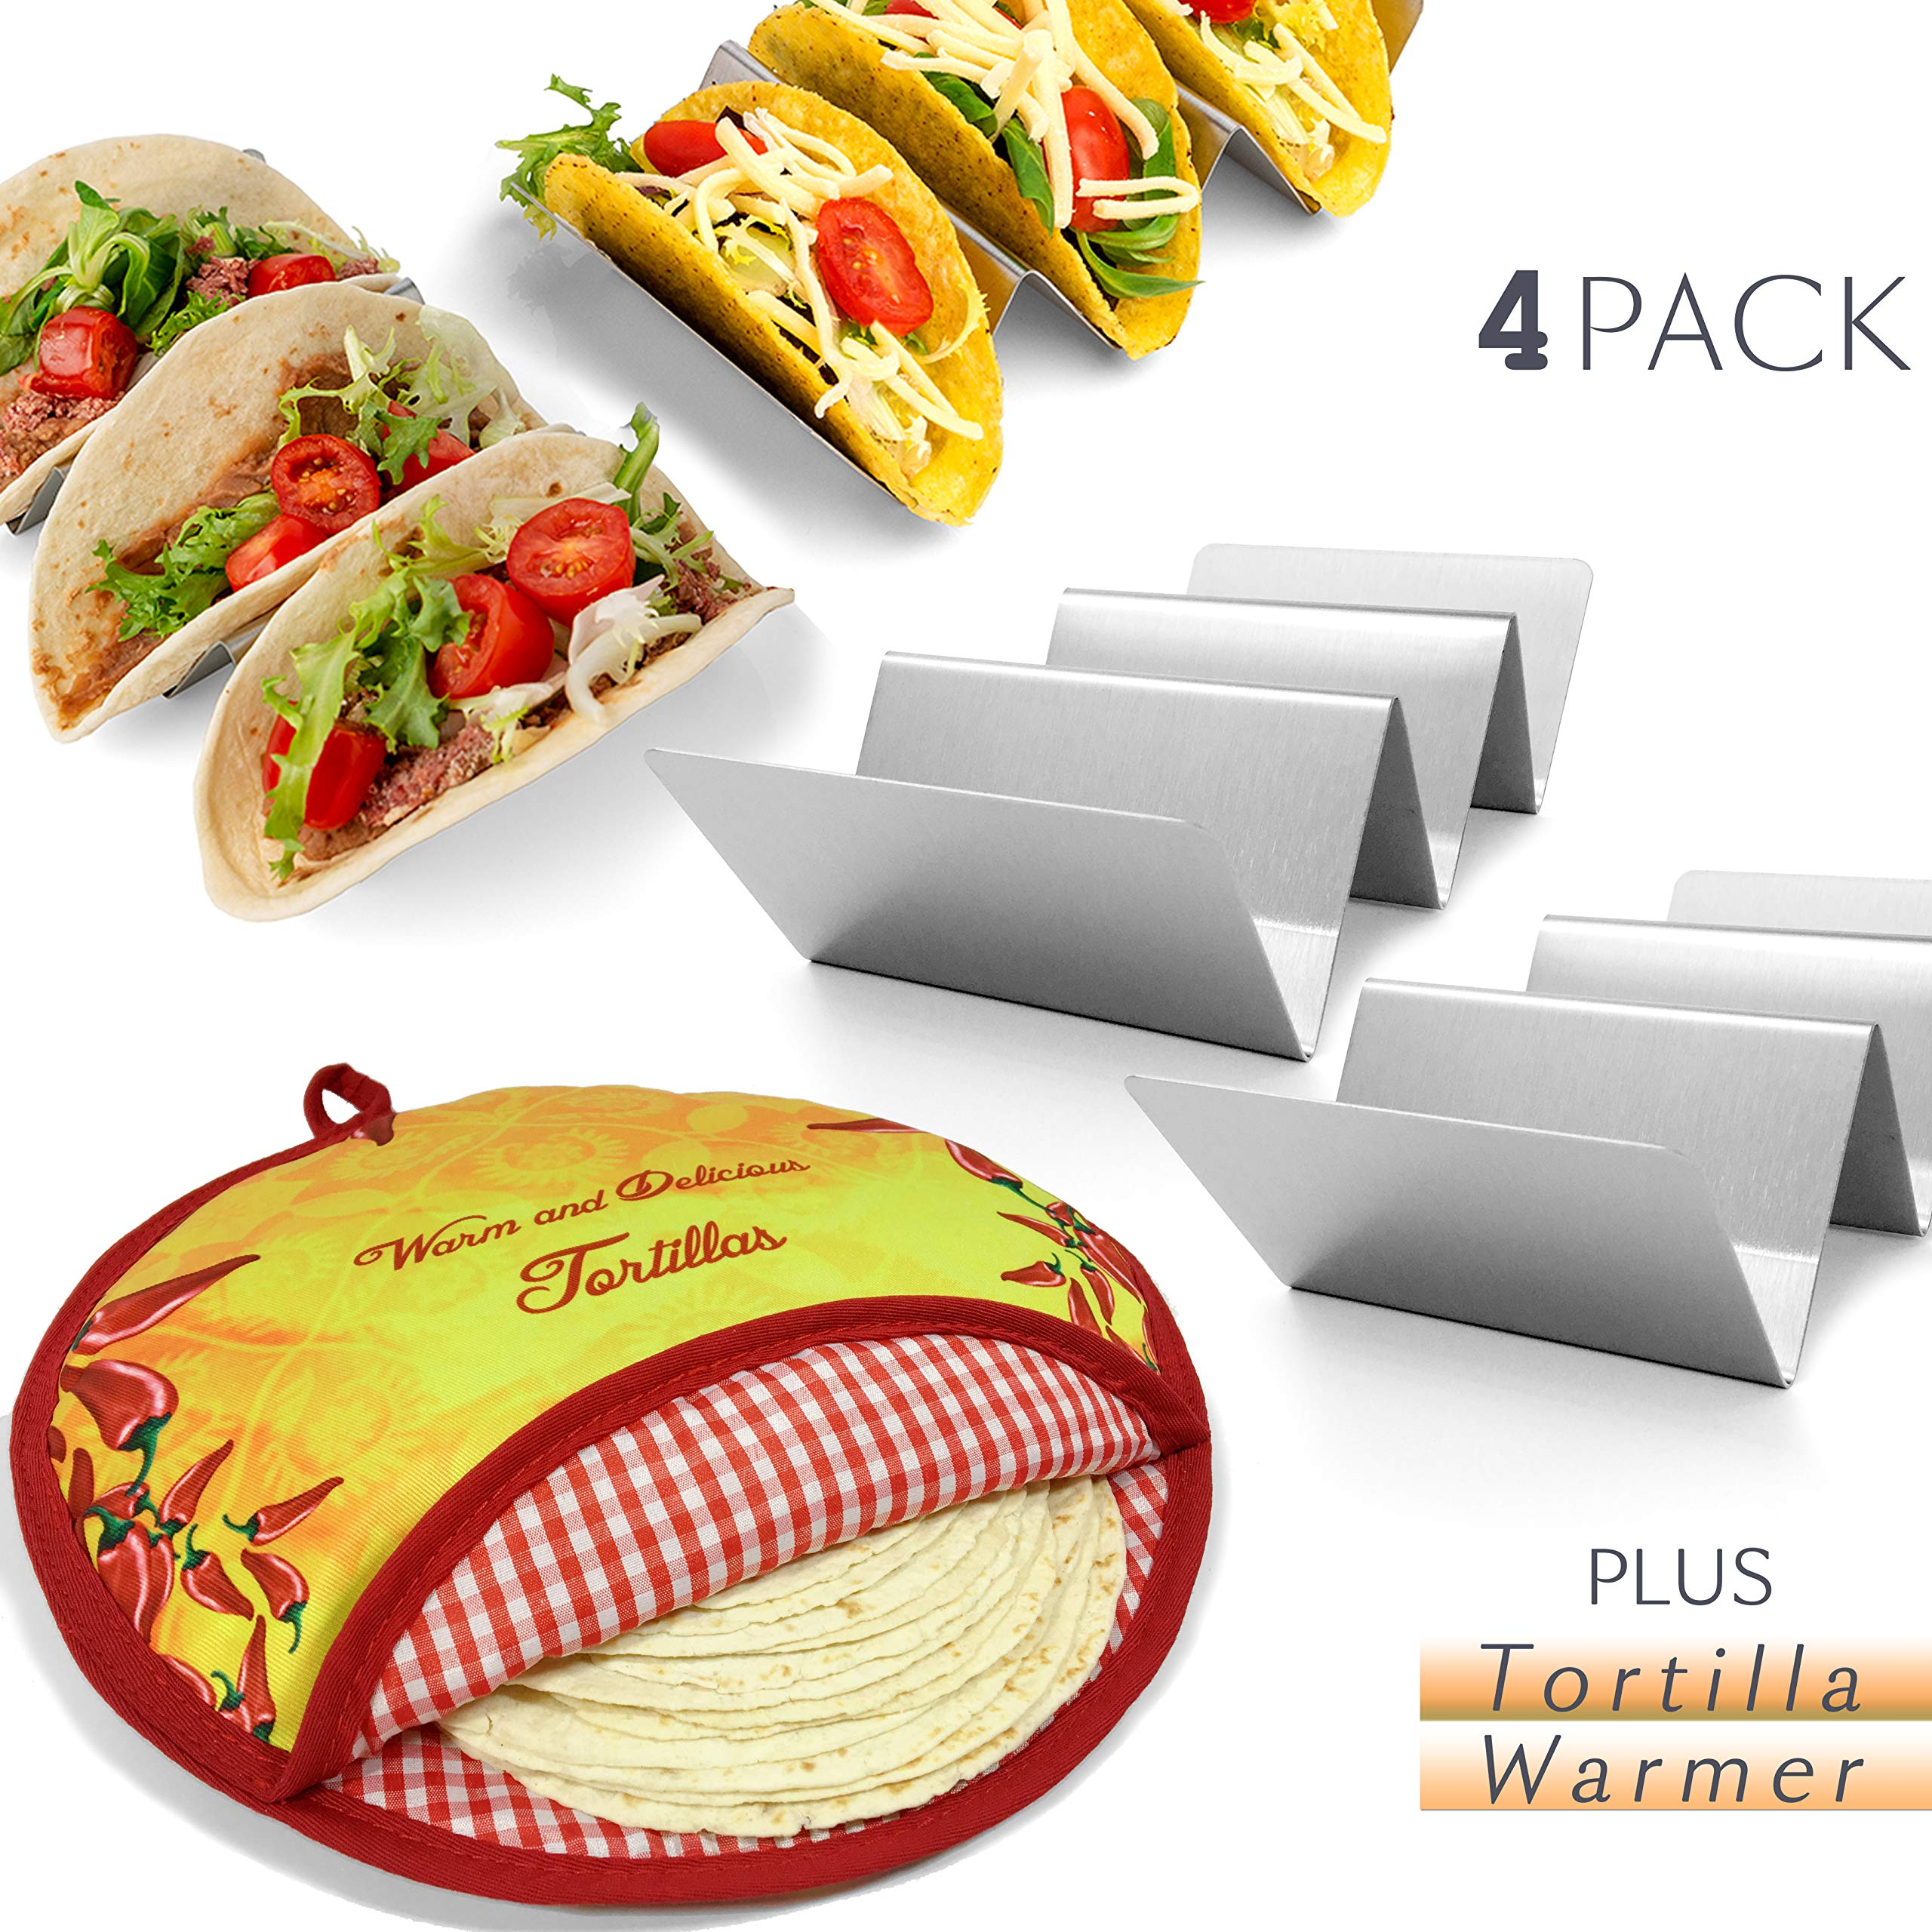 Oven TR3MARK Taco Holder Stand Rack Metal 2 Pack Bundle w// 2 Salsa//Guacamole Cups Premium Stainless Steel 2 and 3 Pocket Dishwasher Safe Grill Soft//Hard Taco Holder